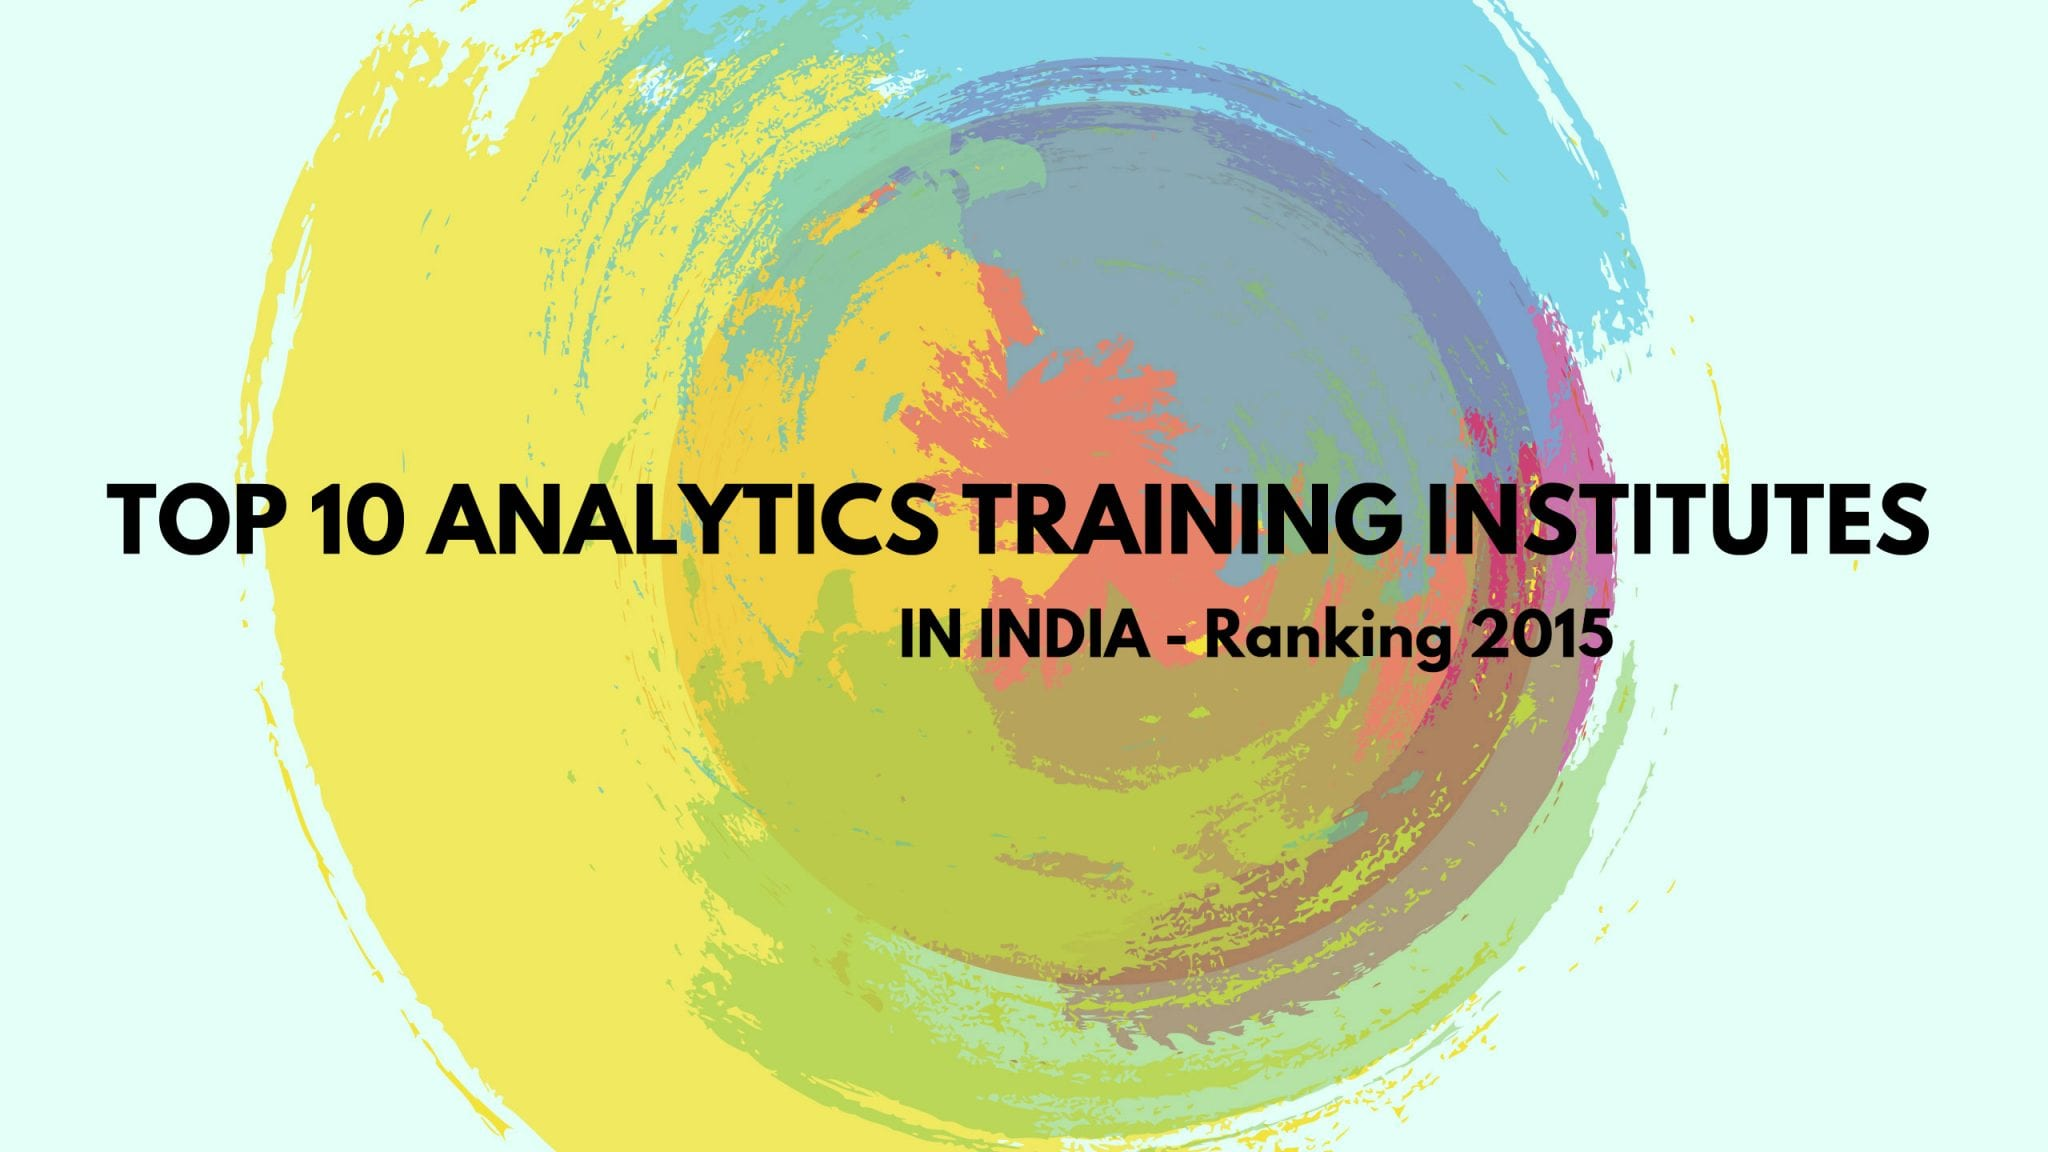 Top 10 Analytics Training Institutes In India Ranking 2015